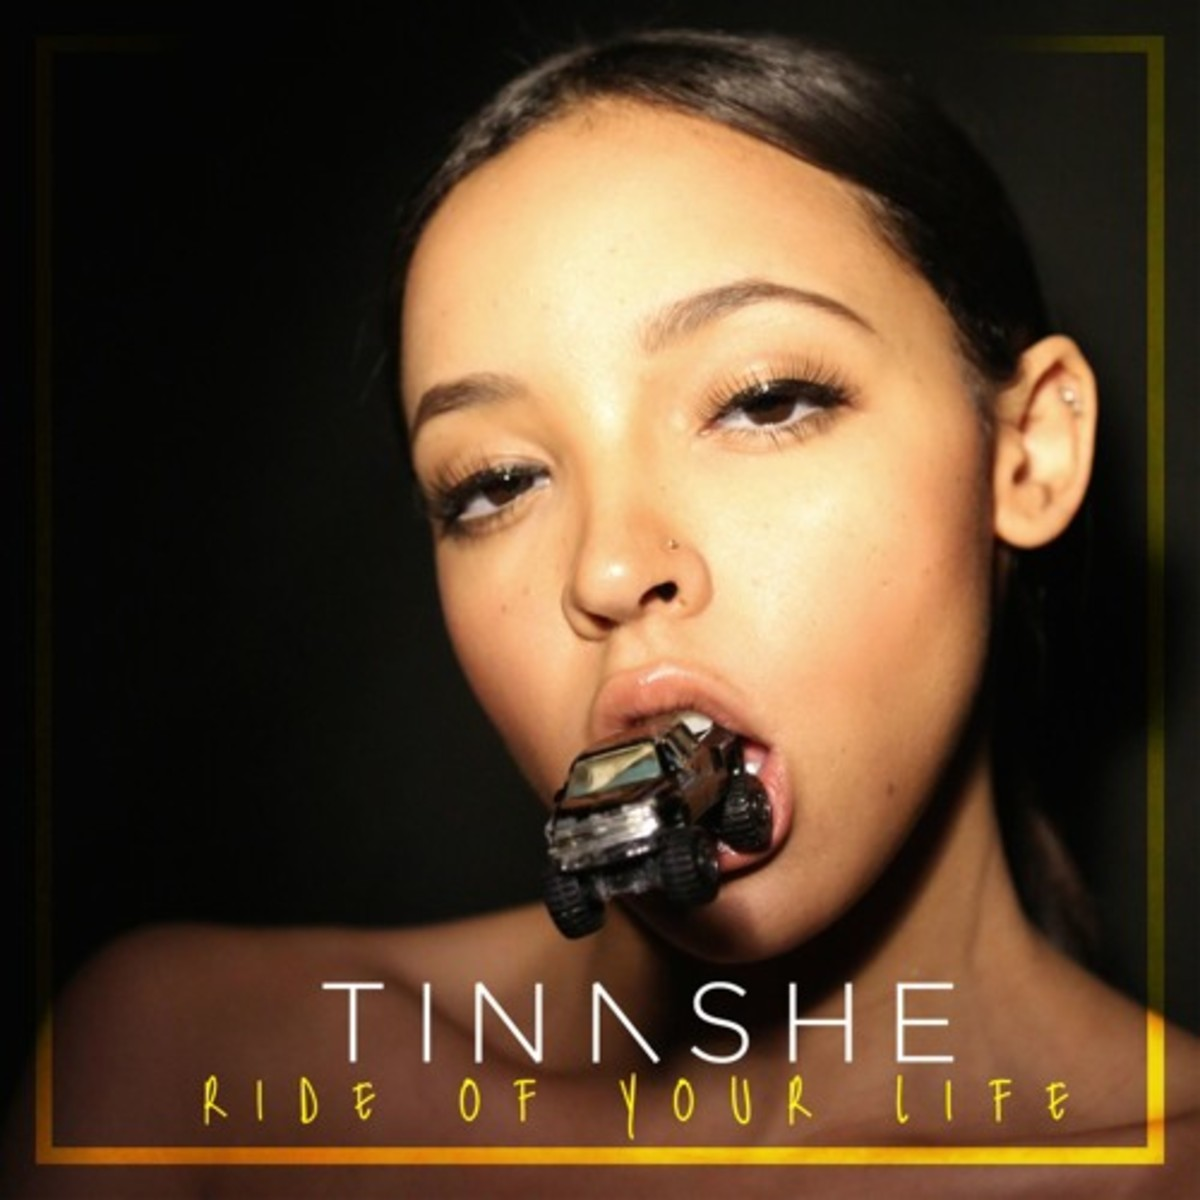 tinashe-ride-of-your-life.jpg